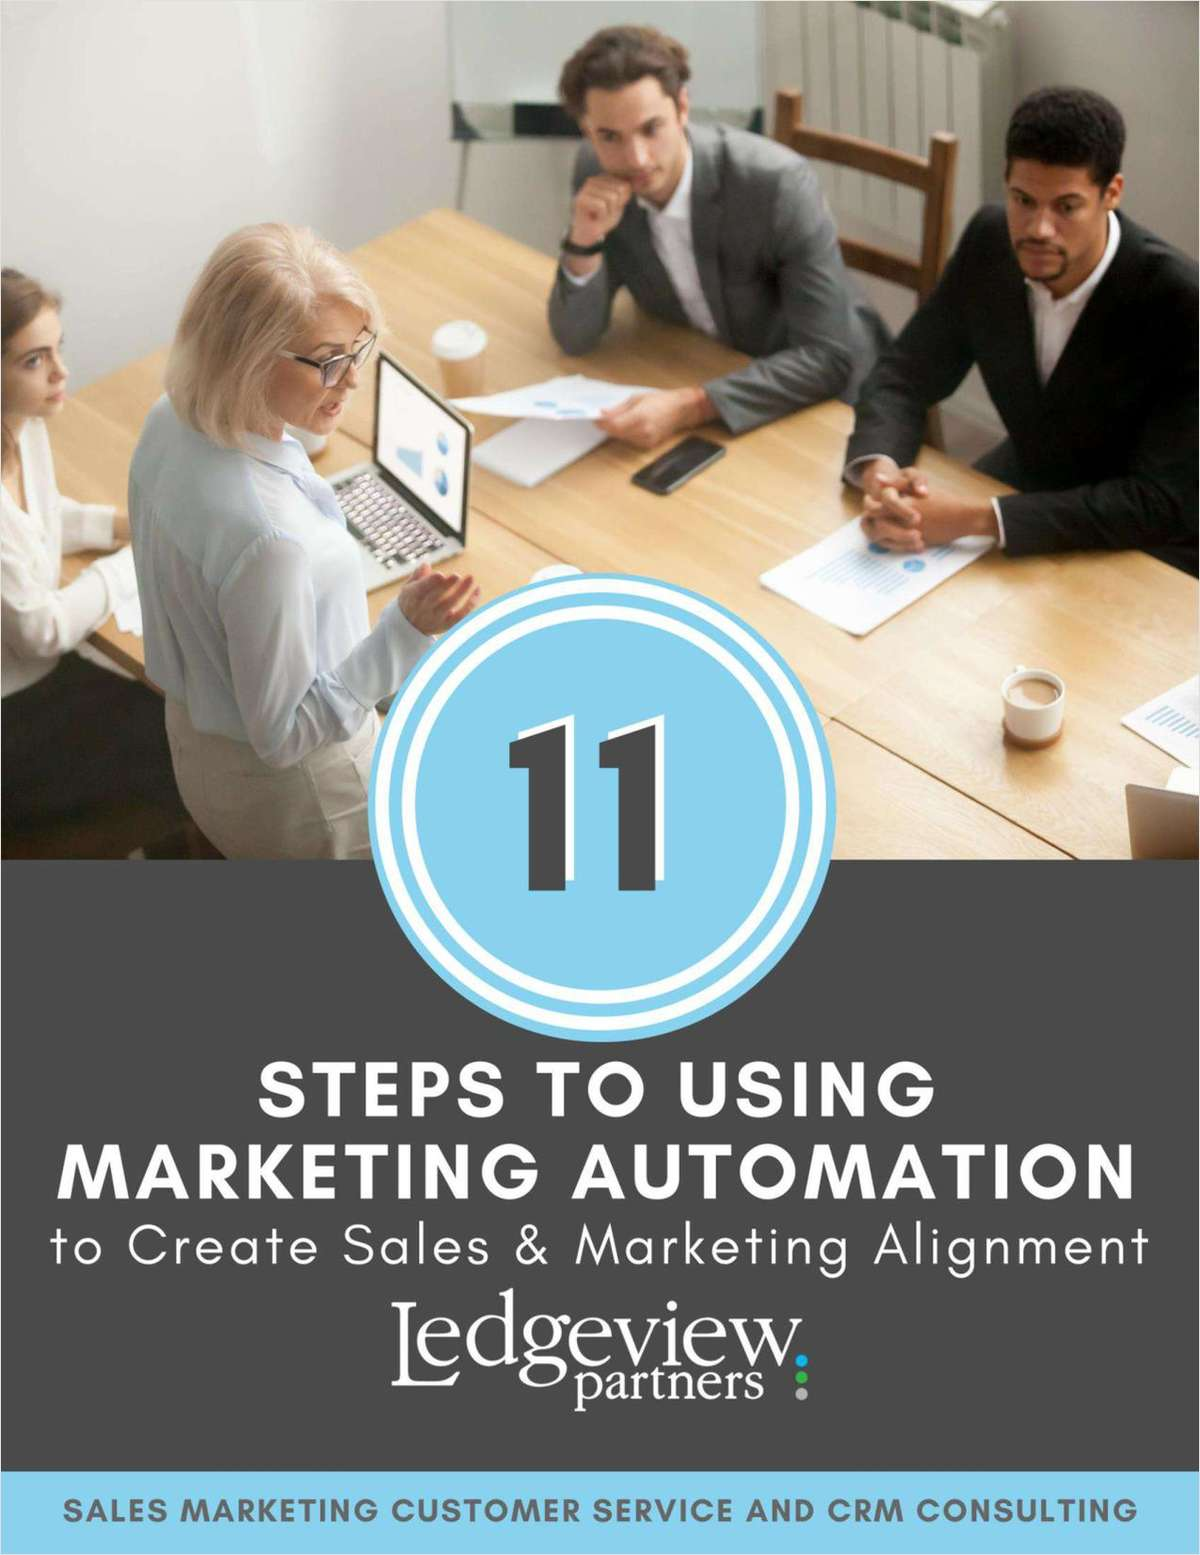 11 Steps to Using Marketing Automation to Create Sales and Marketing Alignment